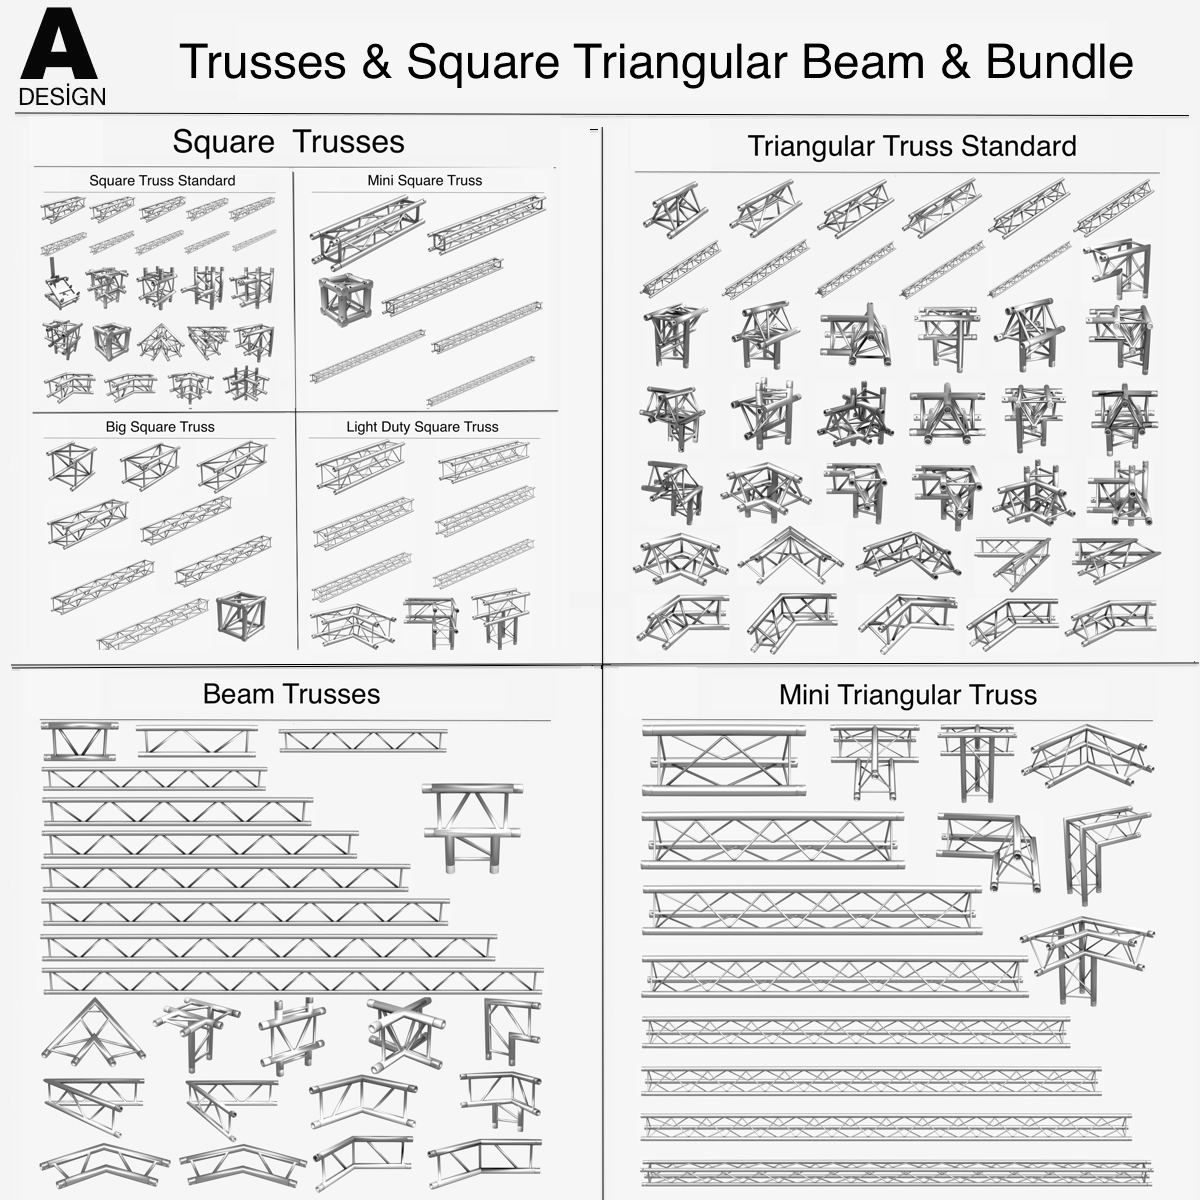 30-00-TrussesSquareTriangularBeamBundle.